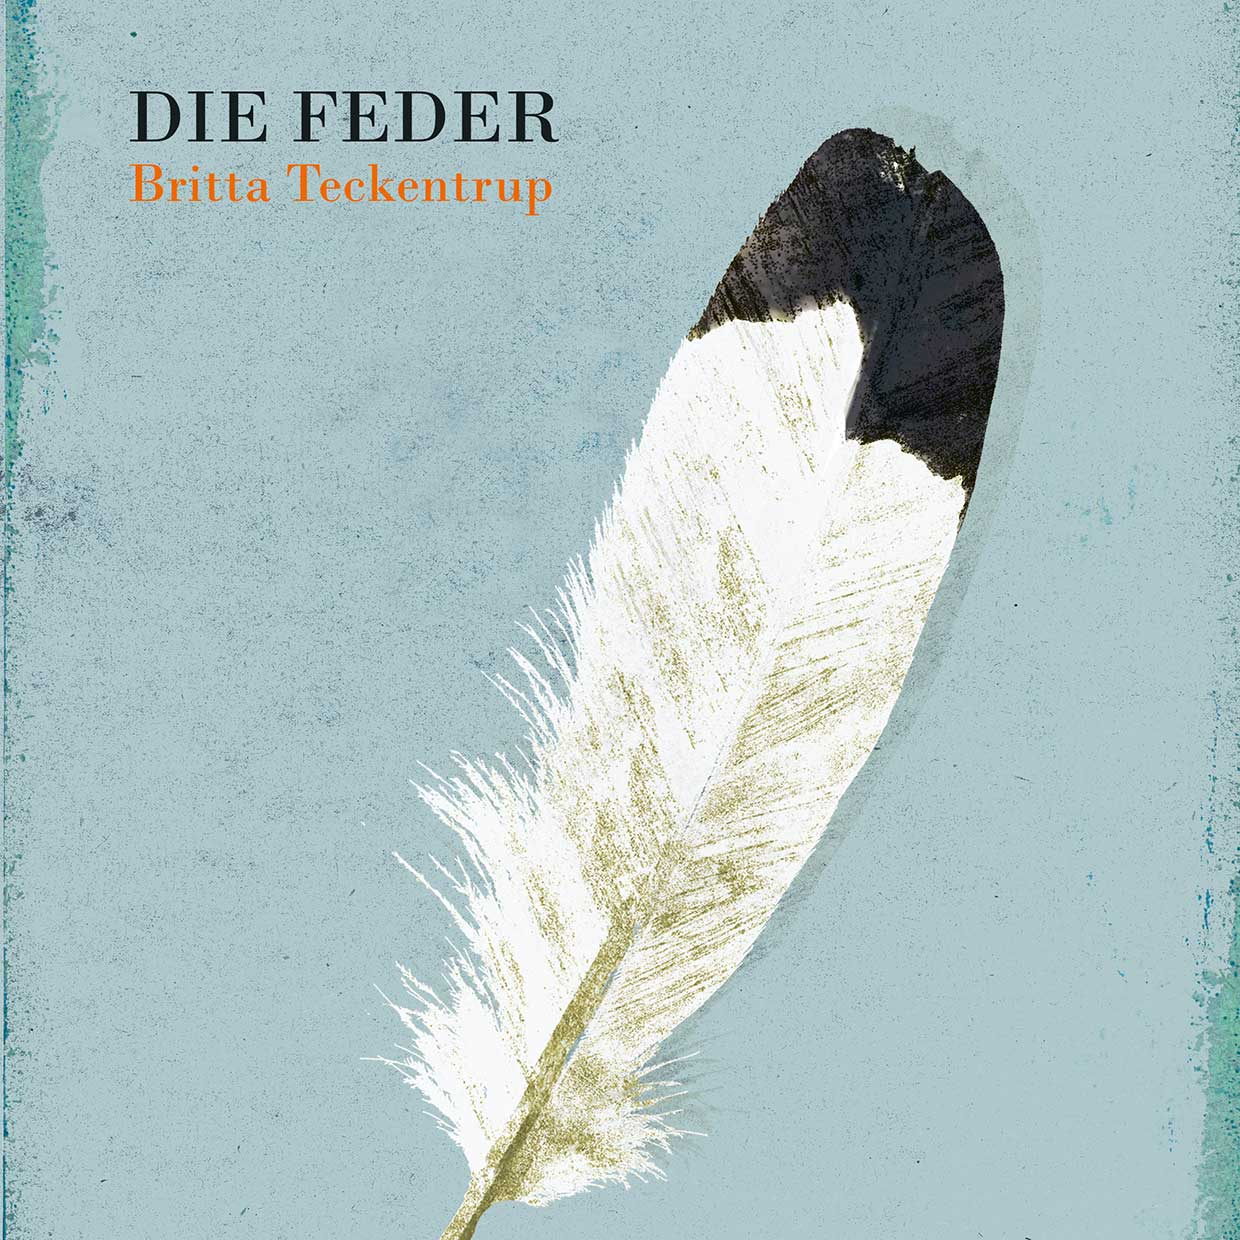 Kinderbuch-Illustration-Die-Feder-Prestel-Verlag-cover